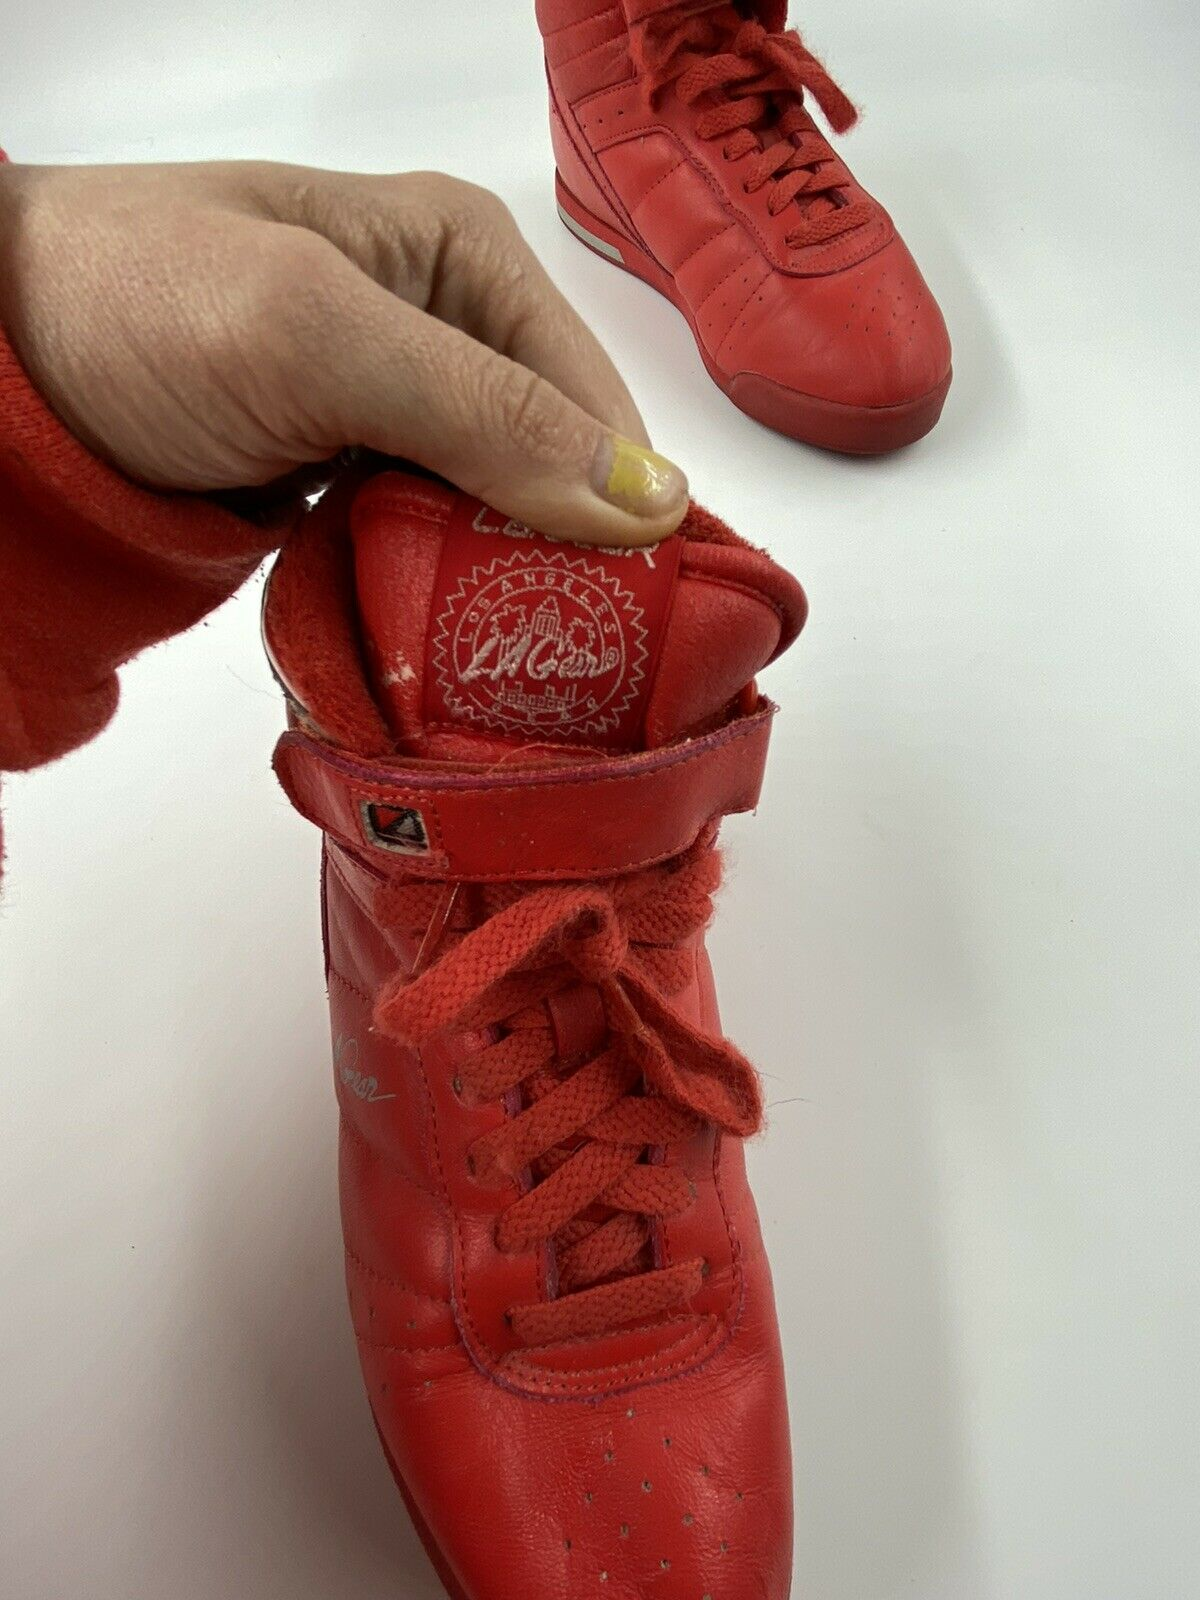 L.A. Gear 6.5 Vintage 80s Red Sneakers 90s Tennis… - image 4